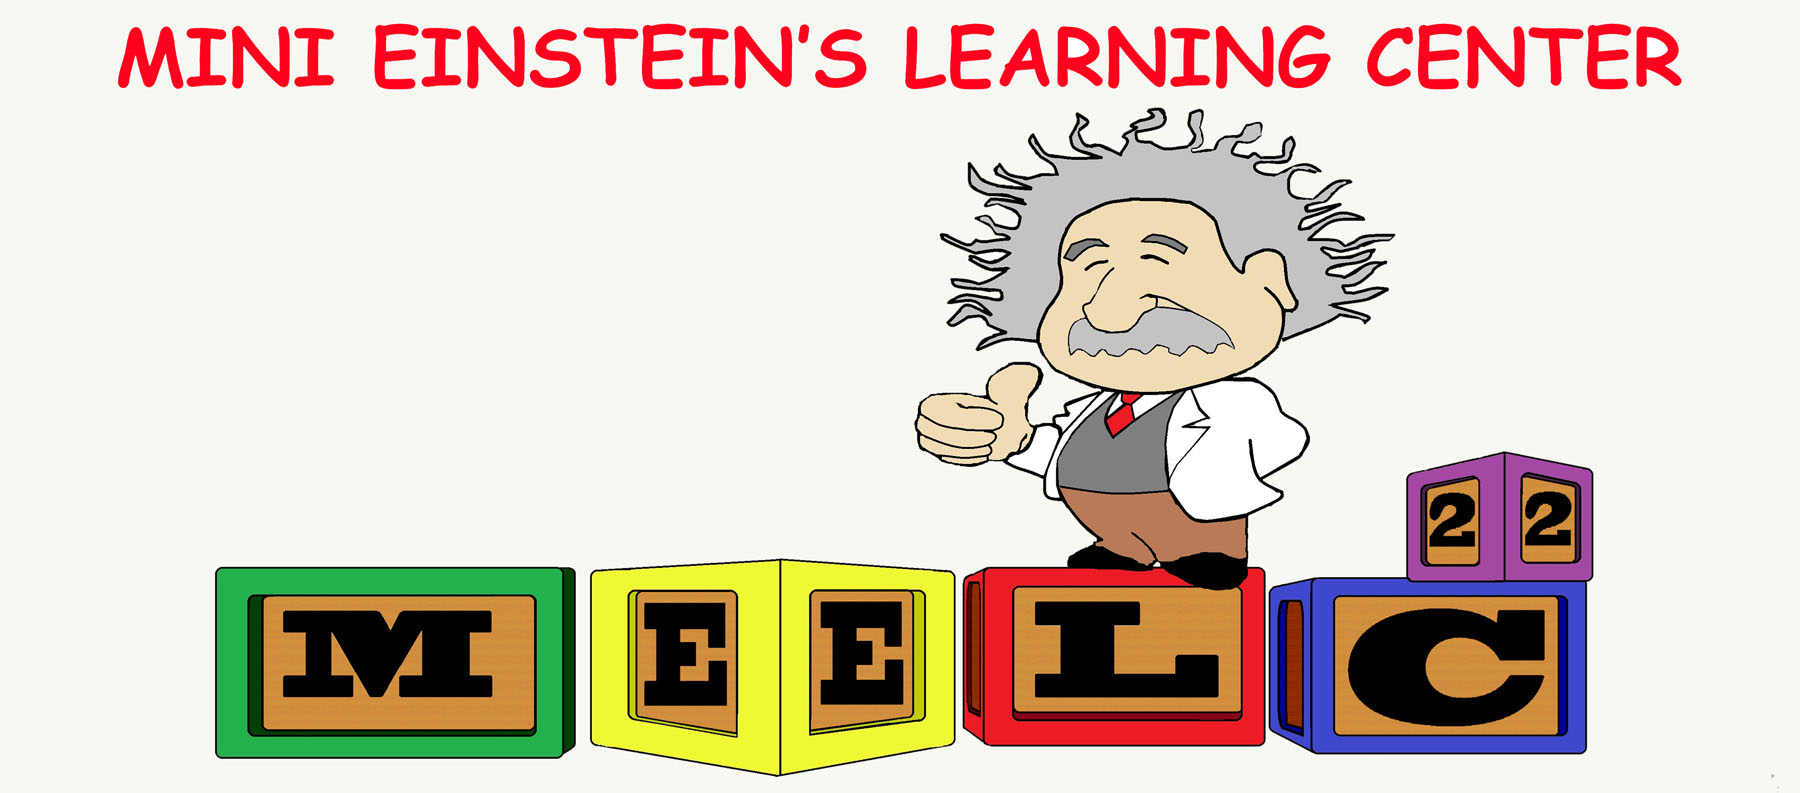 MINI EINSTEINS LEARNING CENTER